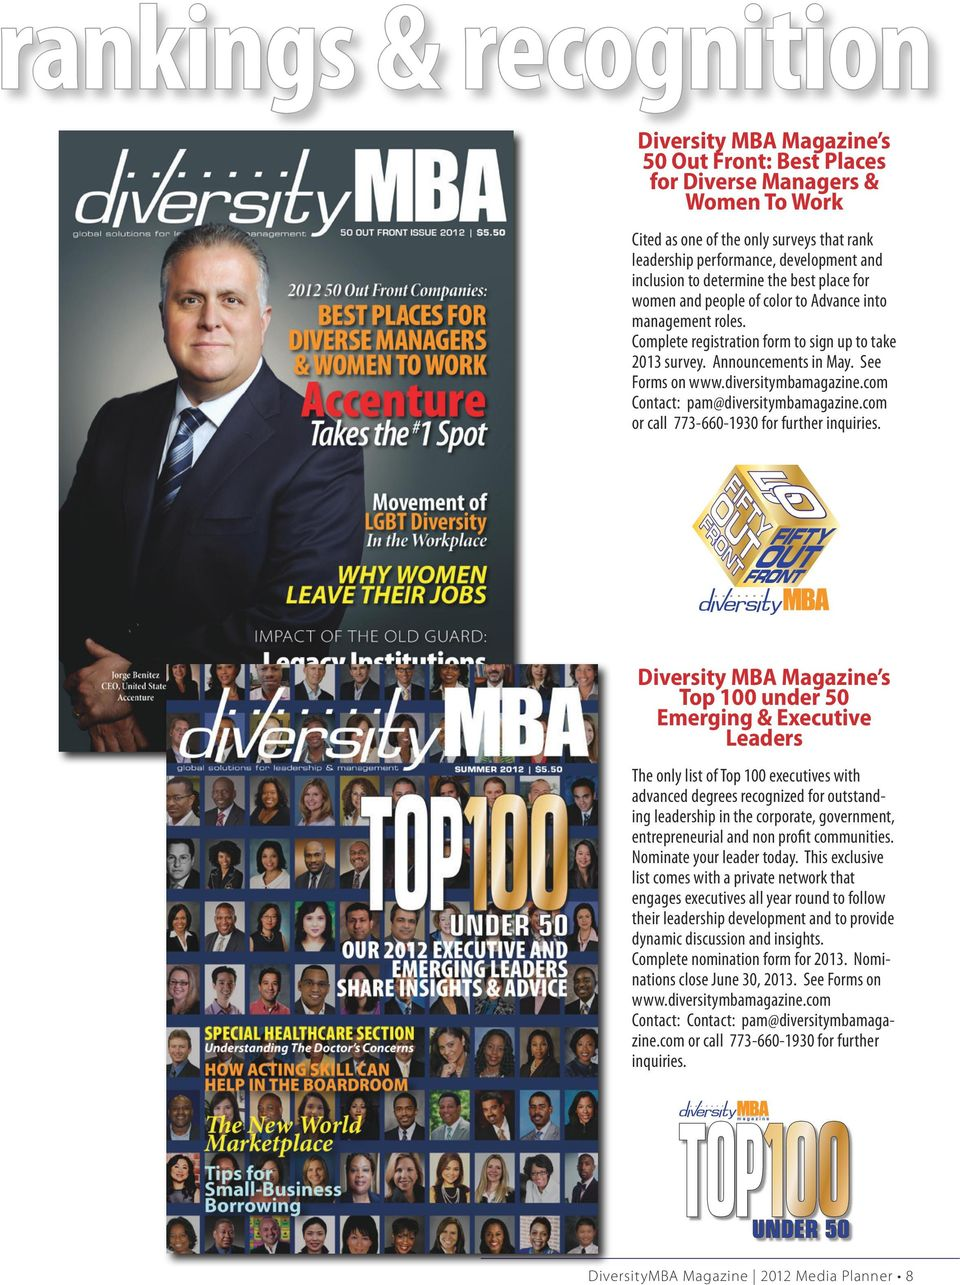 diversitymbamagazine.com Contact: pam@diversitymbamagazine.com or call 773-660-1930 for further inquiries.